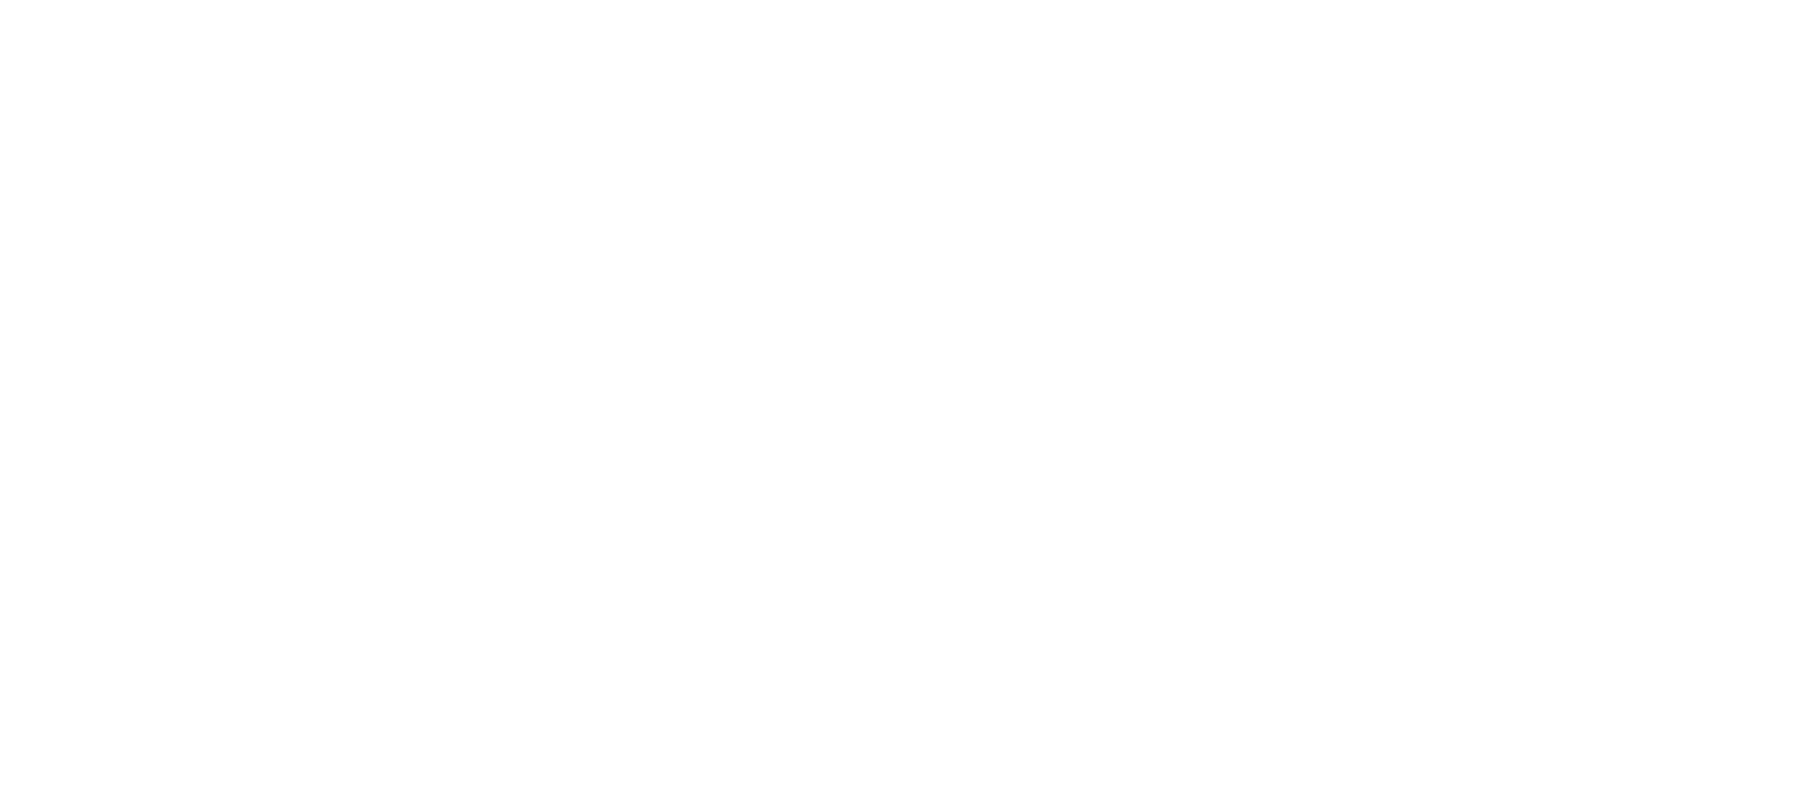 Housing Industry Association Gold Coast 2015 Winner